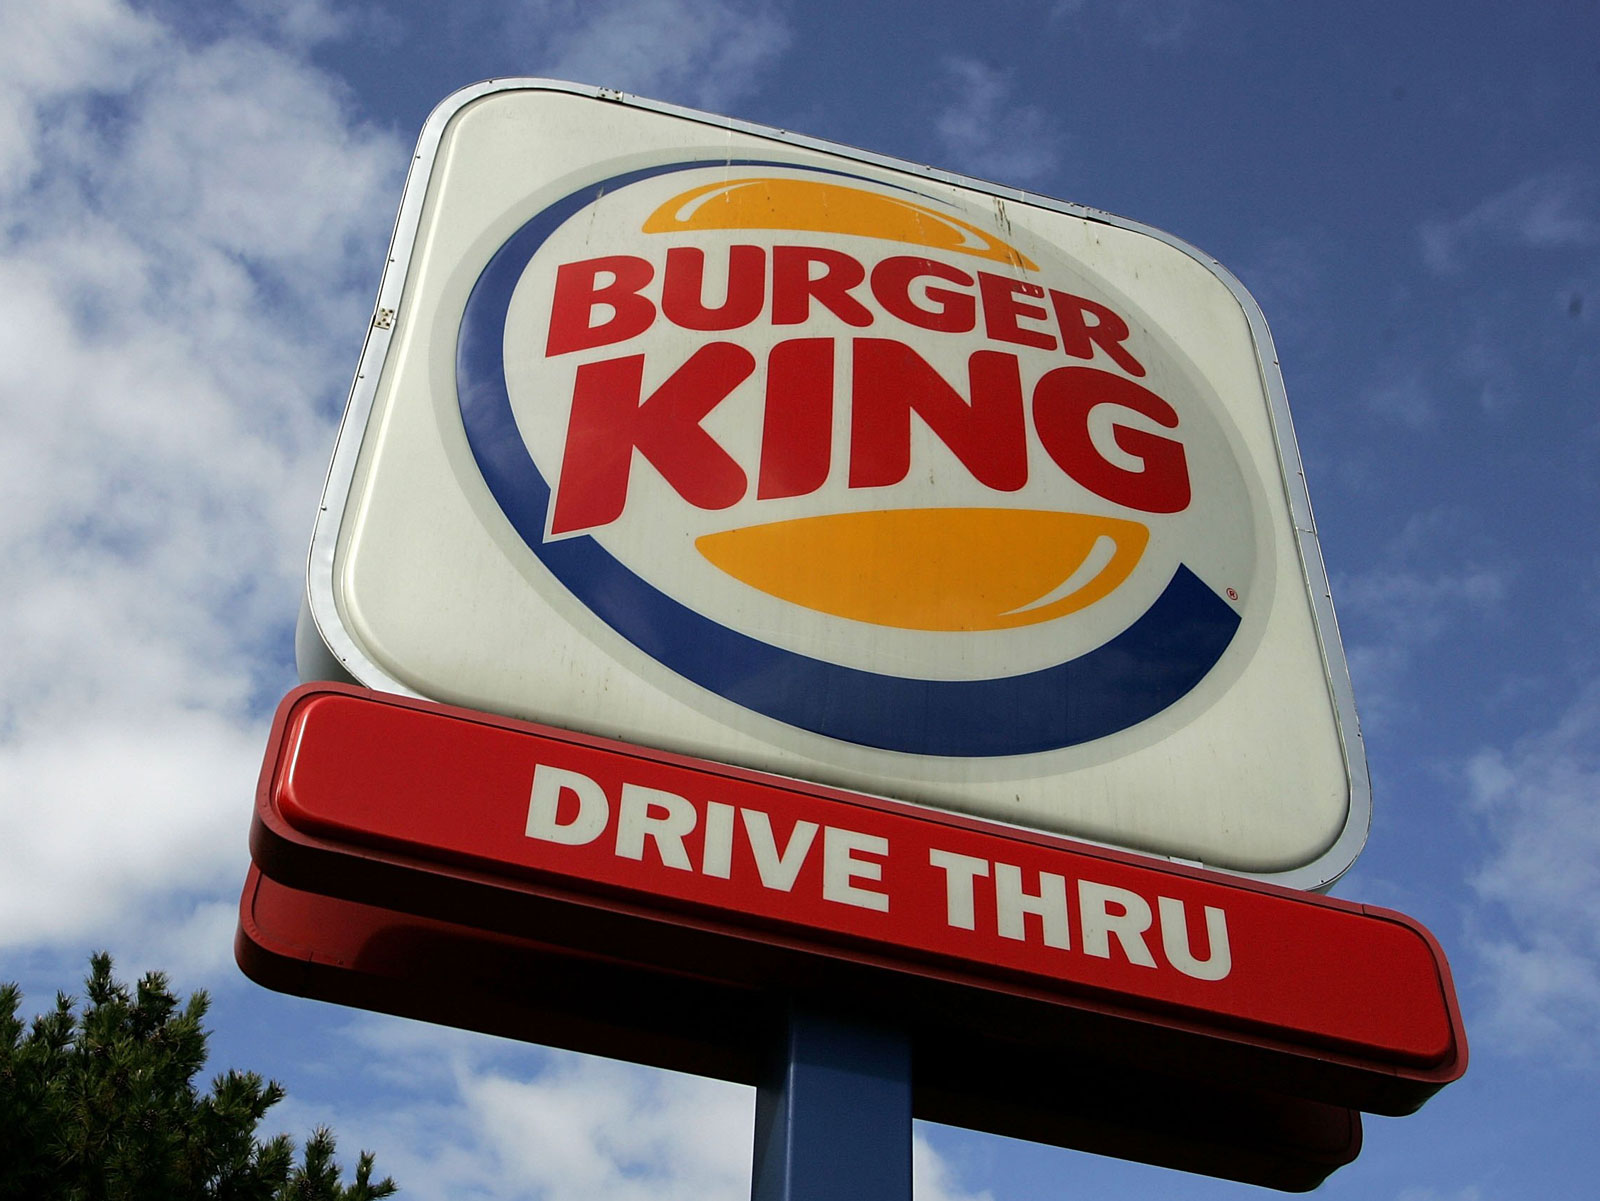 burger-king-coffee-subscription-FT-BLOG0319.jpg